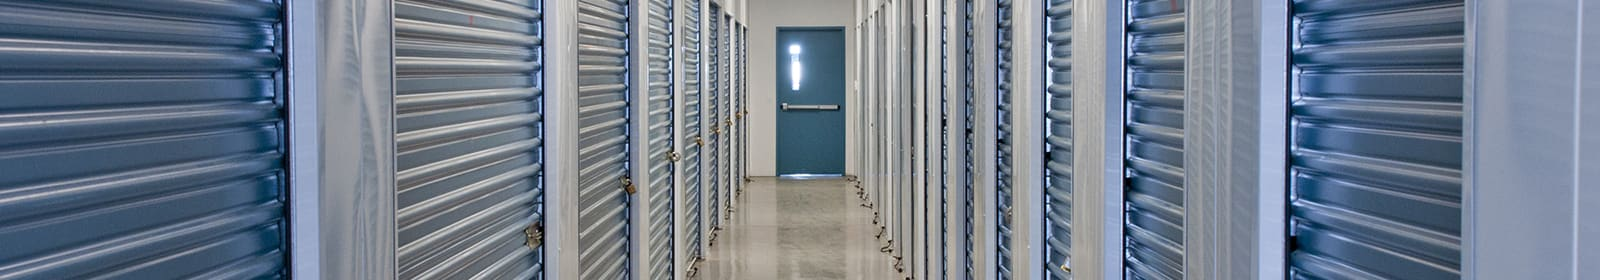 Knollwood Self Storage units and pricing in St Louis Park, MN.